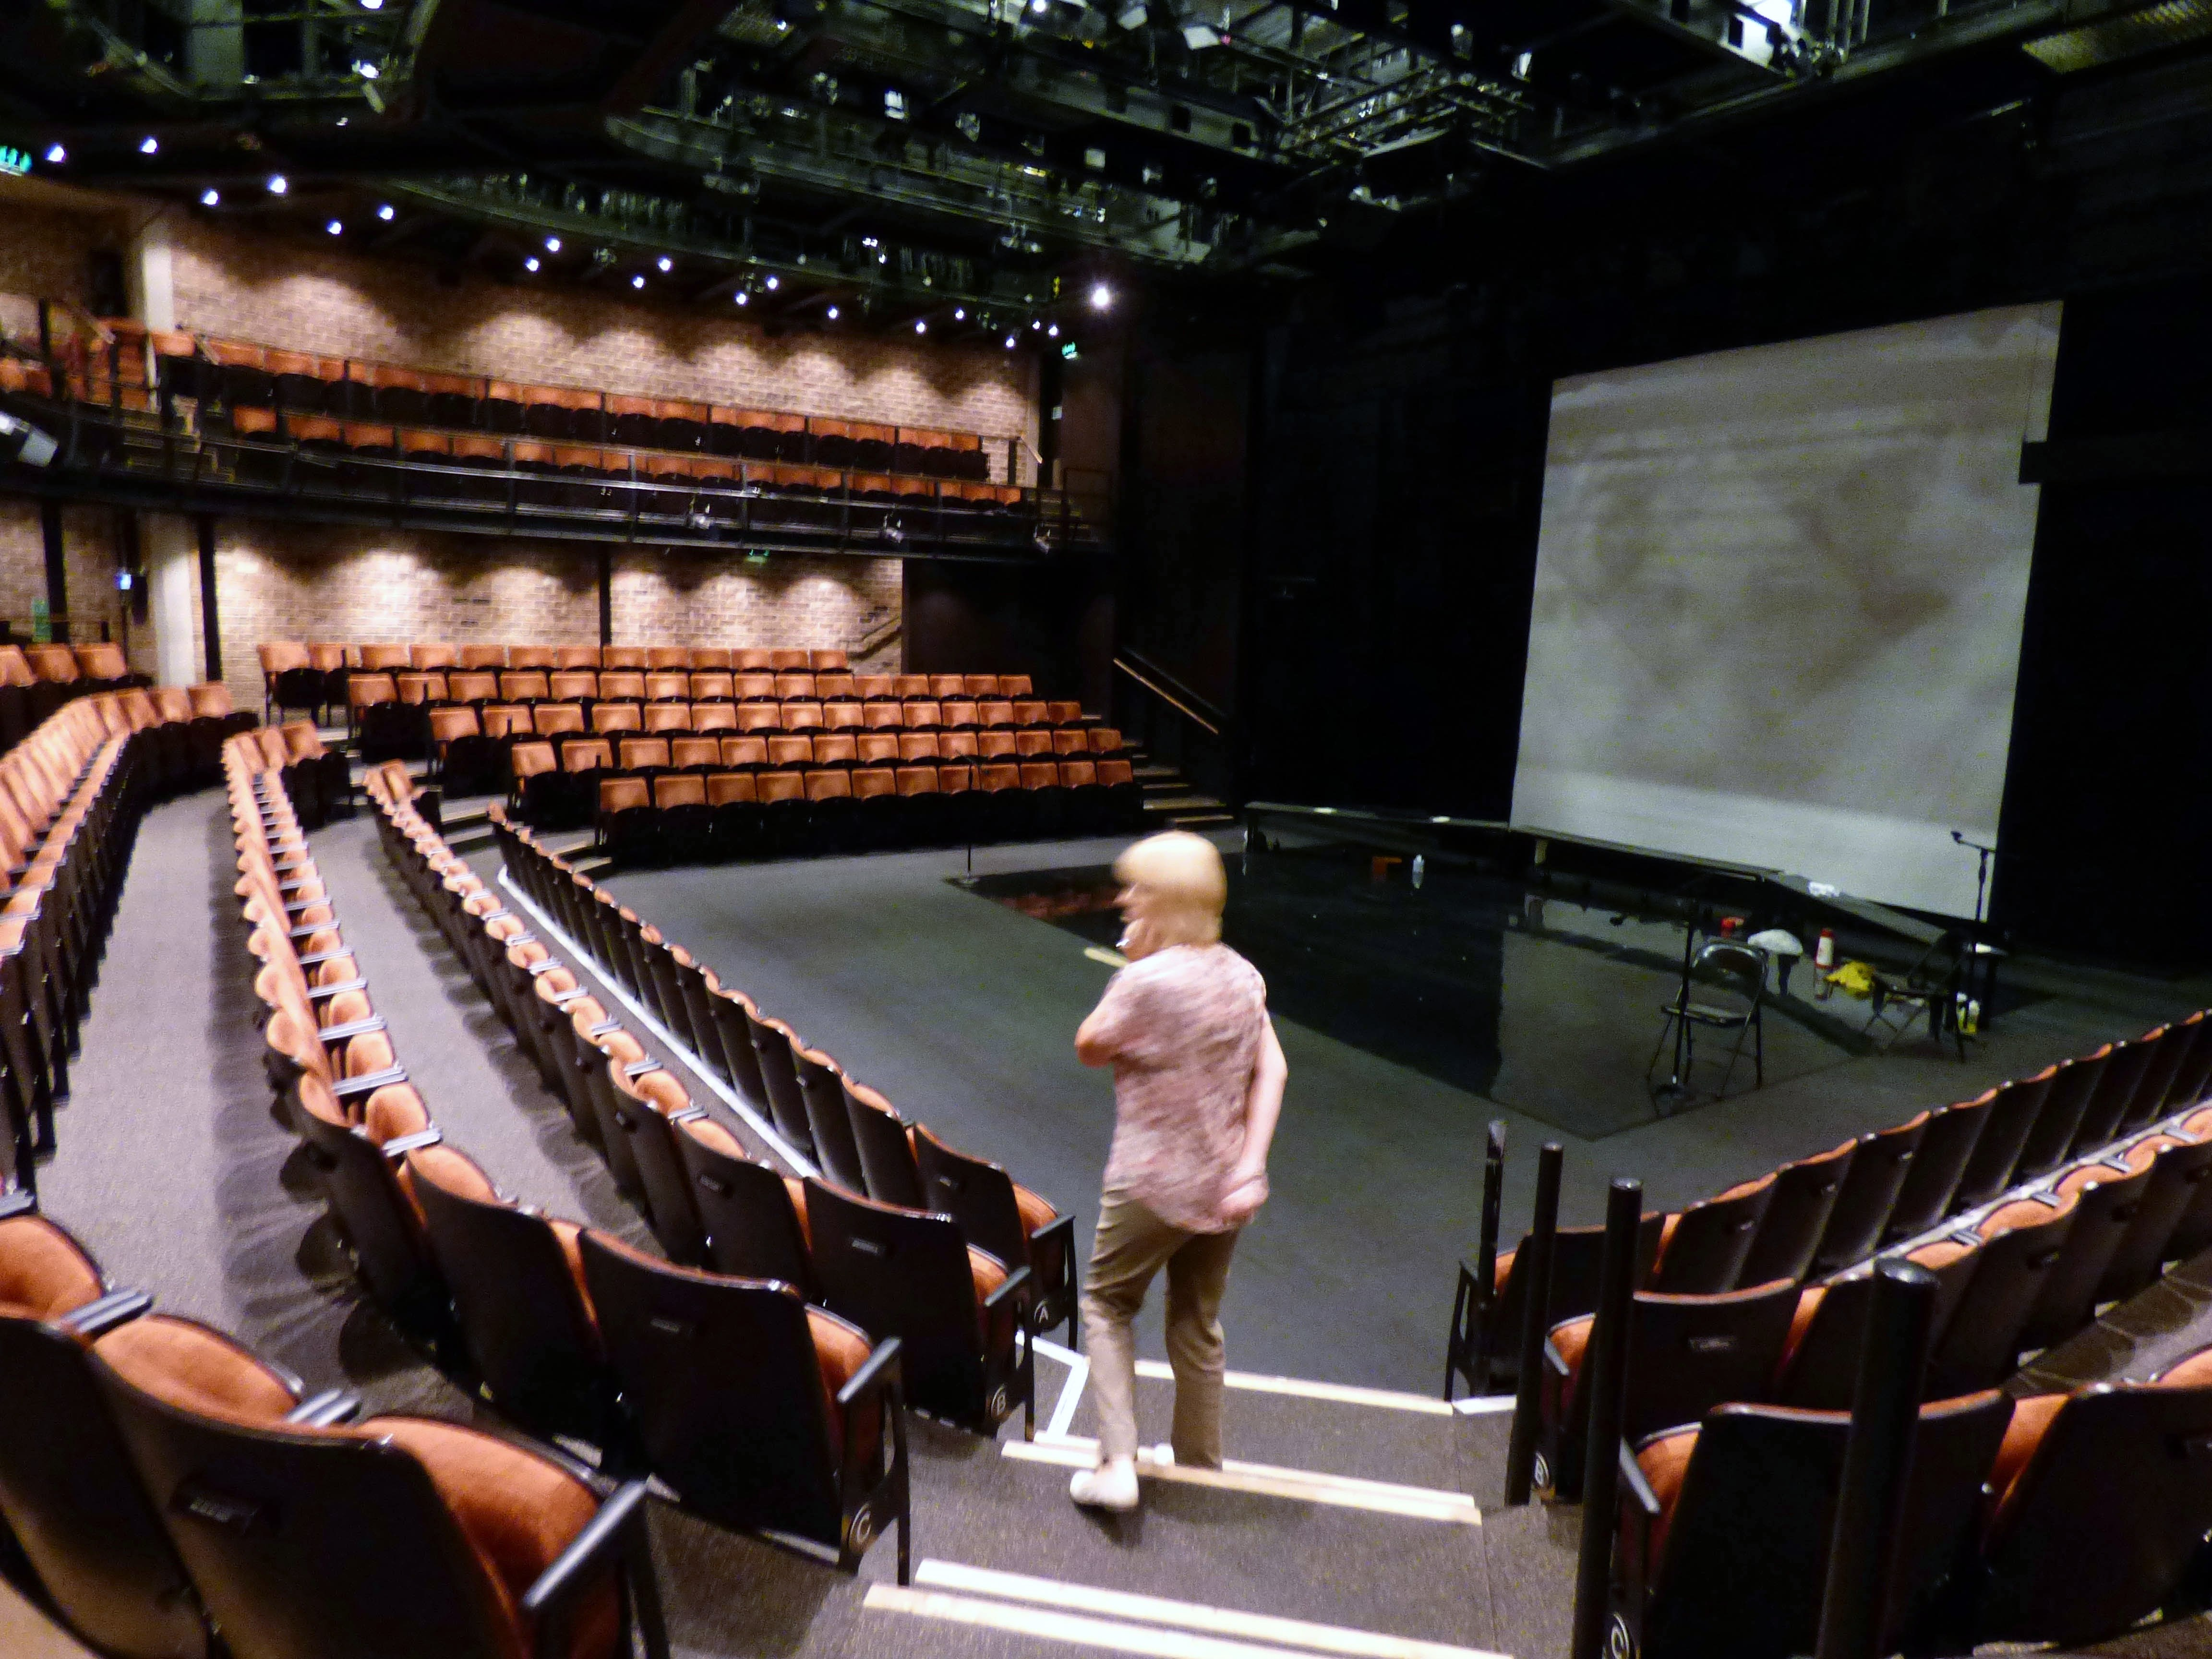 The seatng area and stage of Everyman Theatre, Liverpool, July 2016